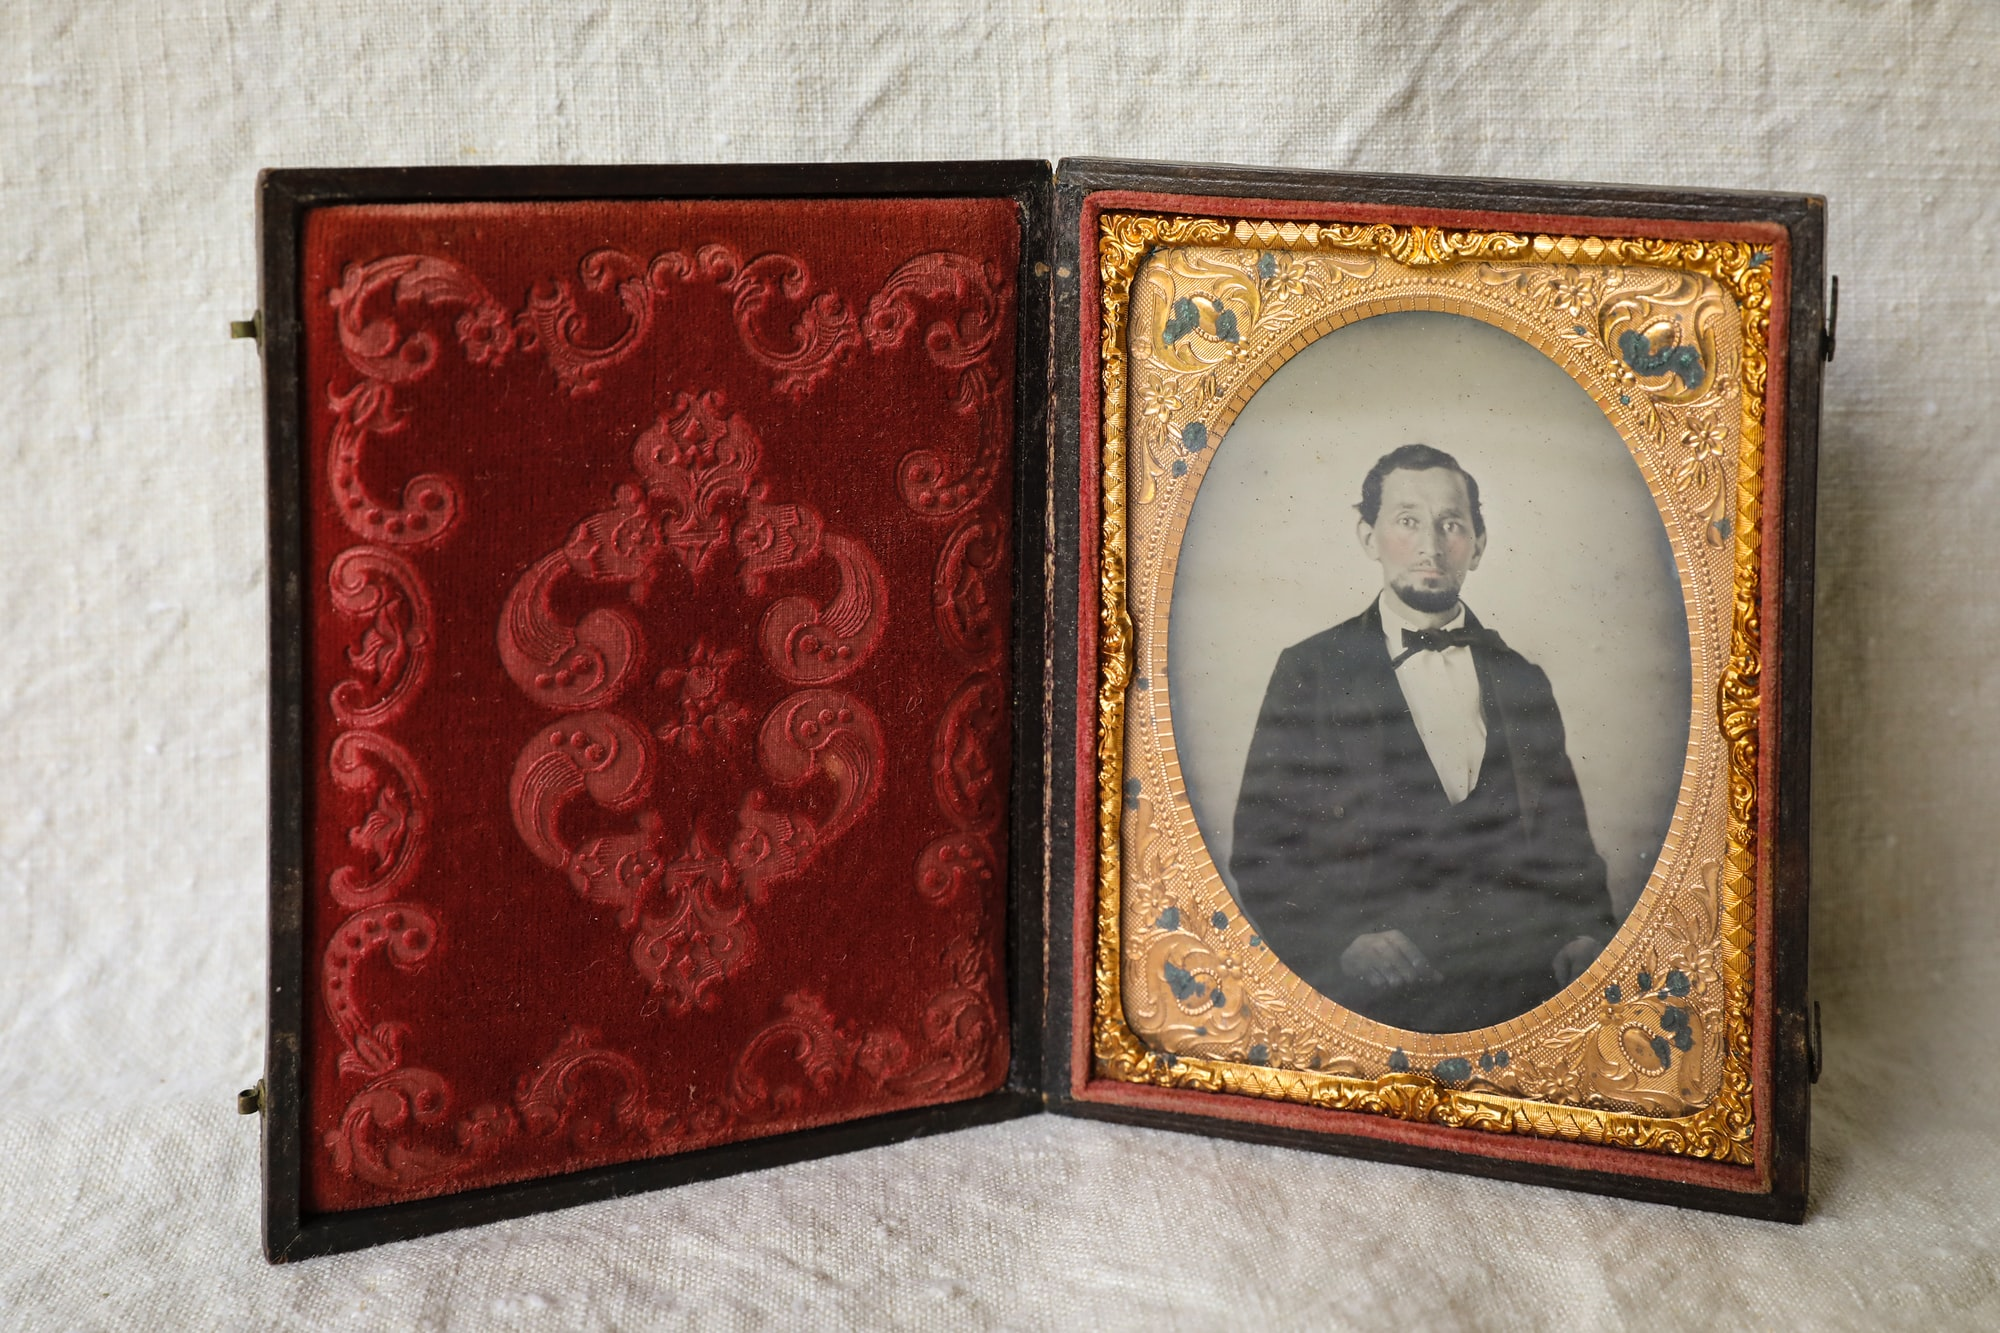 Daguerreotype of a single man found in my grandfather's office. Not sure who he is. But it is a pristine example of daguerreotypes of the era.